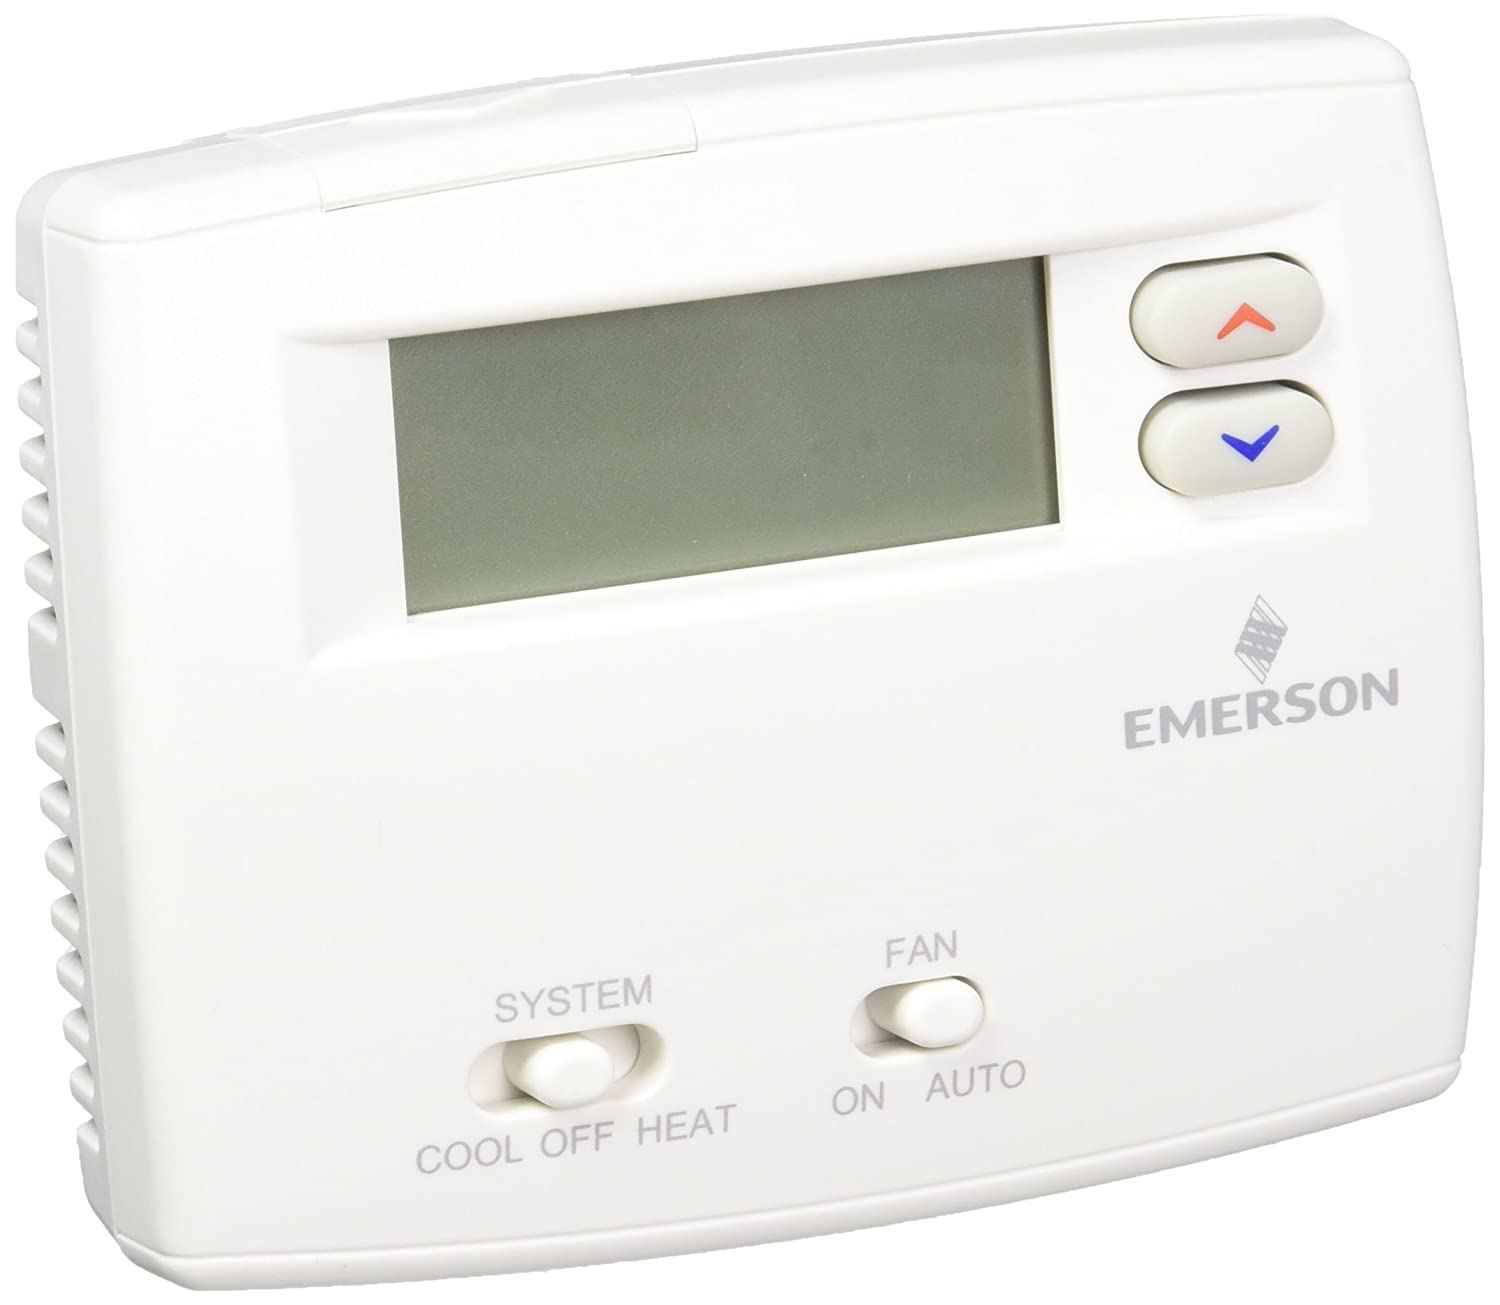 Emerson Thermostats White Rodgers 1F86-0244 Non-Programmable Thermostat  1H/1C Blue